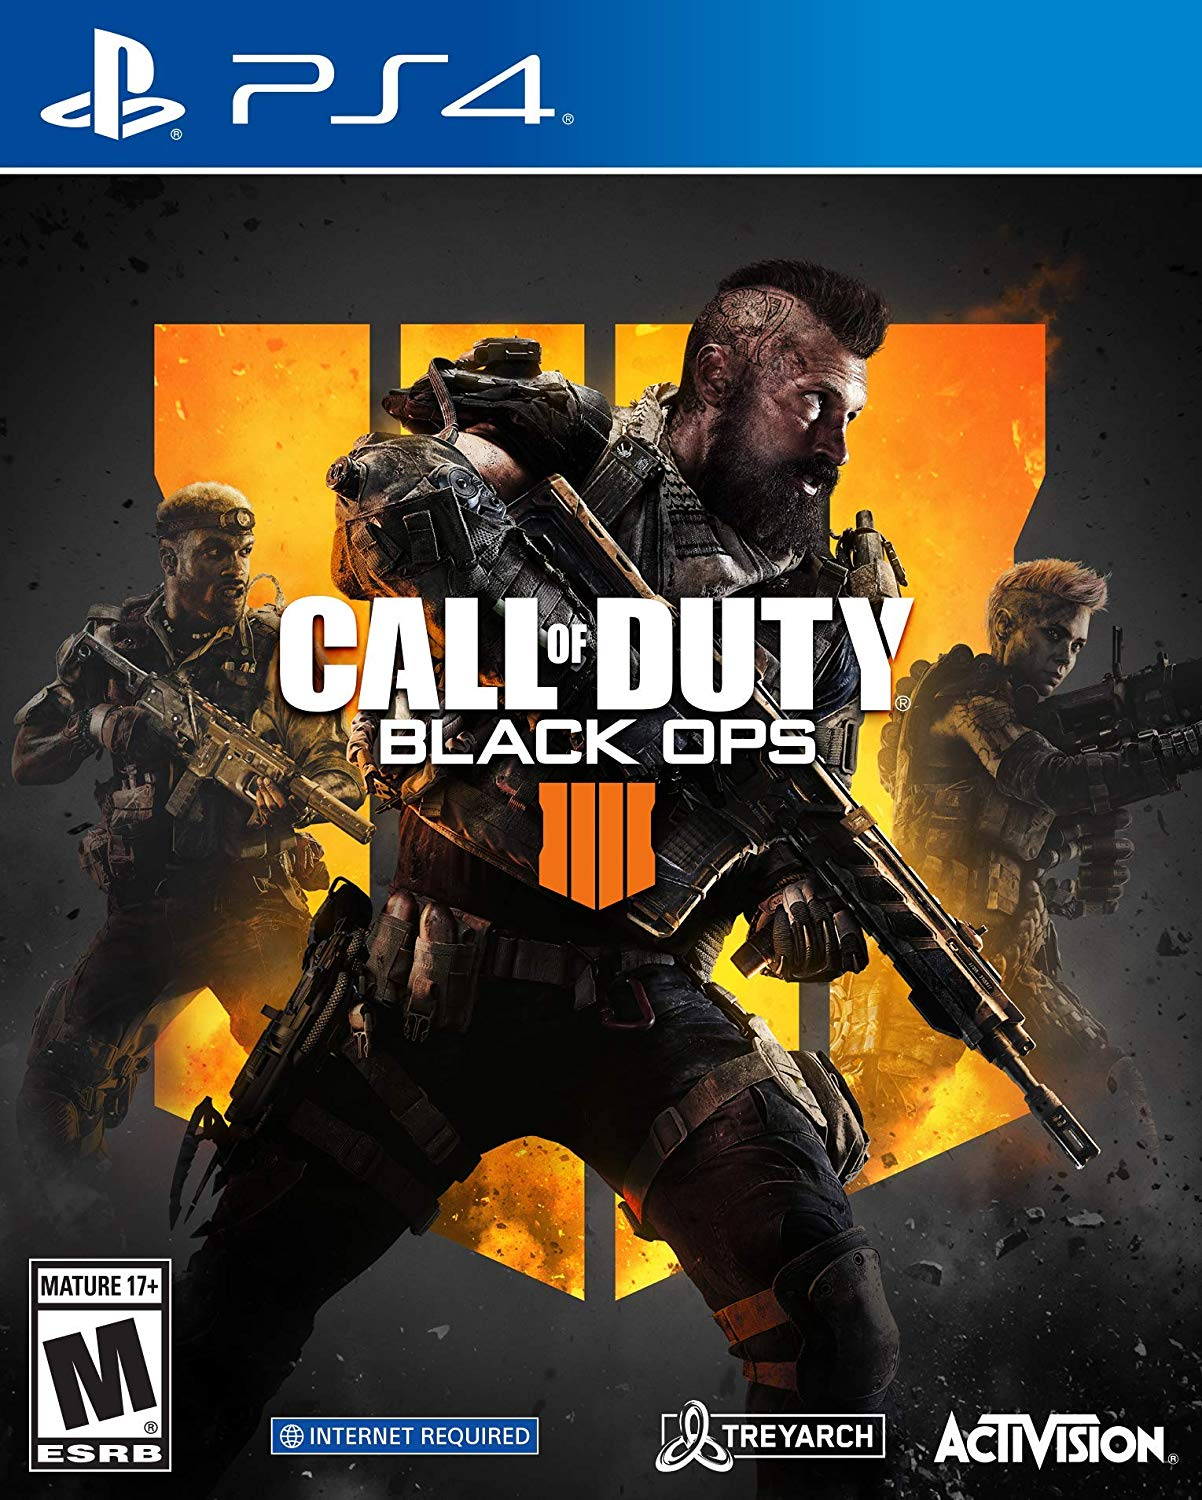 Call Of Duty Black Ops 4 Activision Playstation 4 047875882256 Black Duty Call Call Of Duty Black Call Of Duty Black Ops